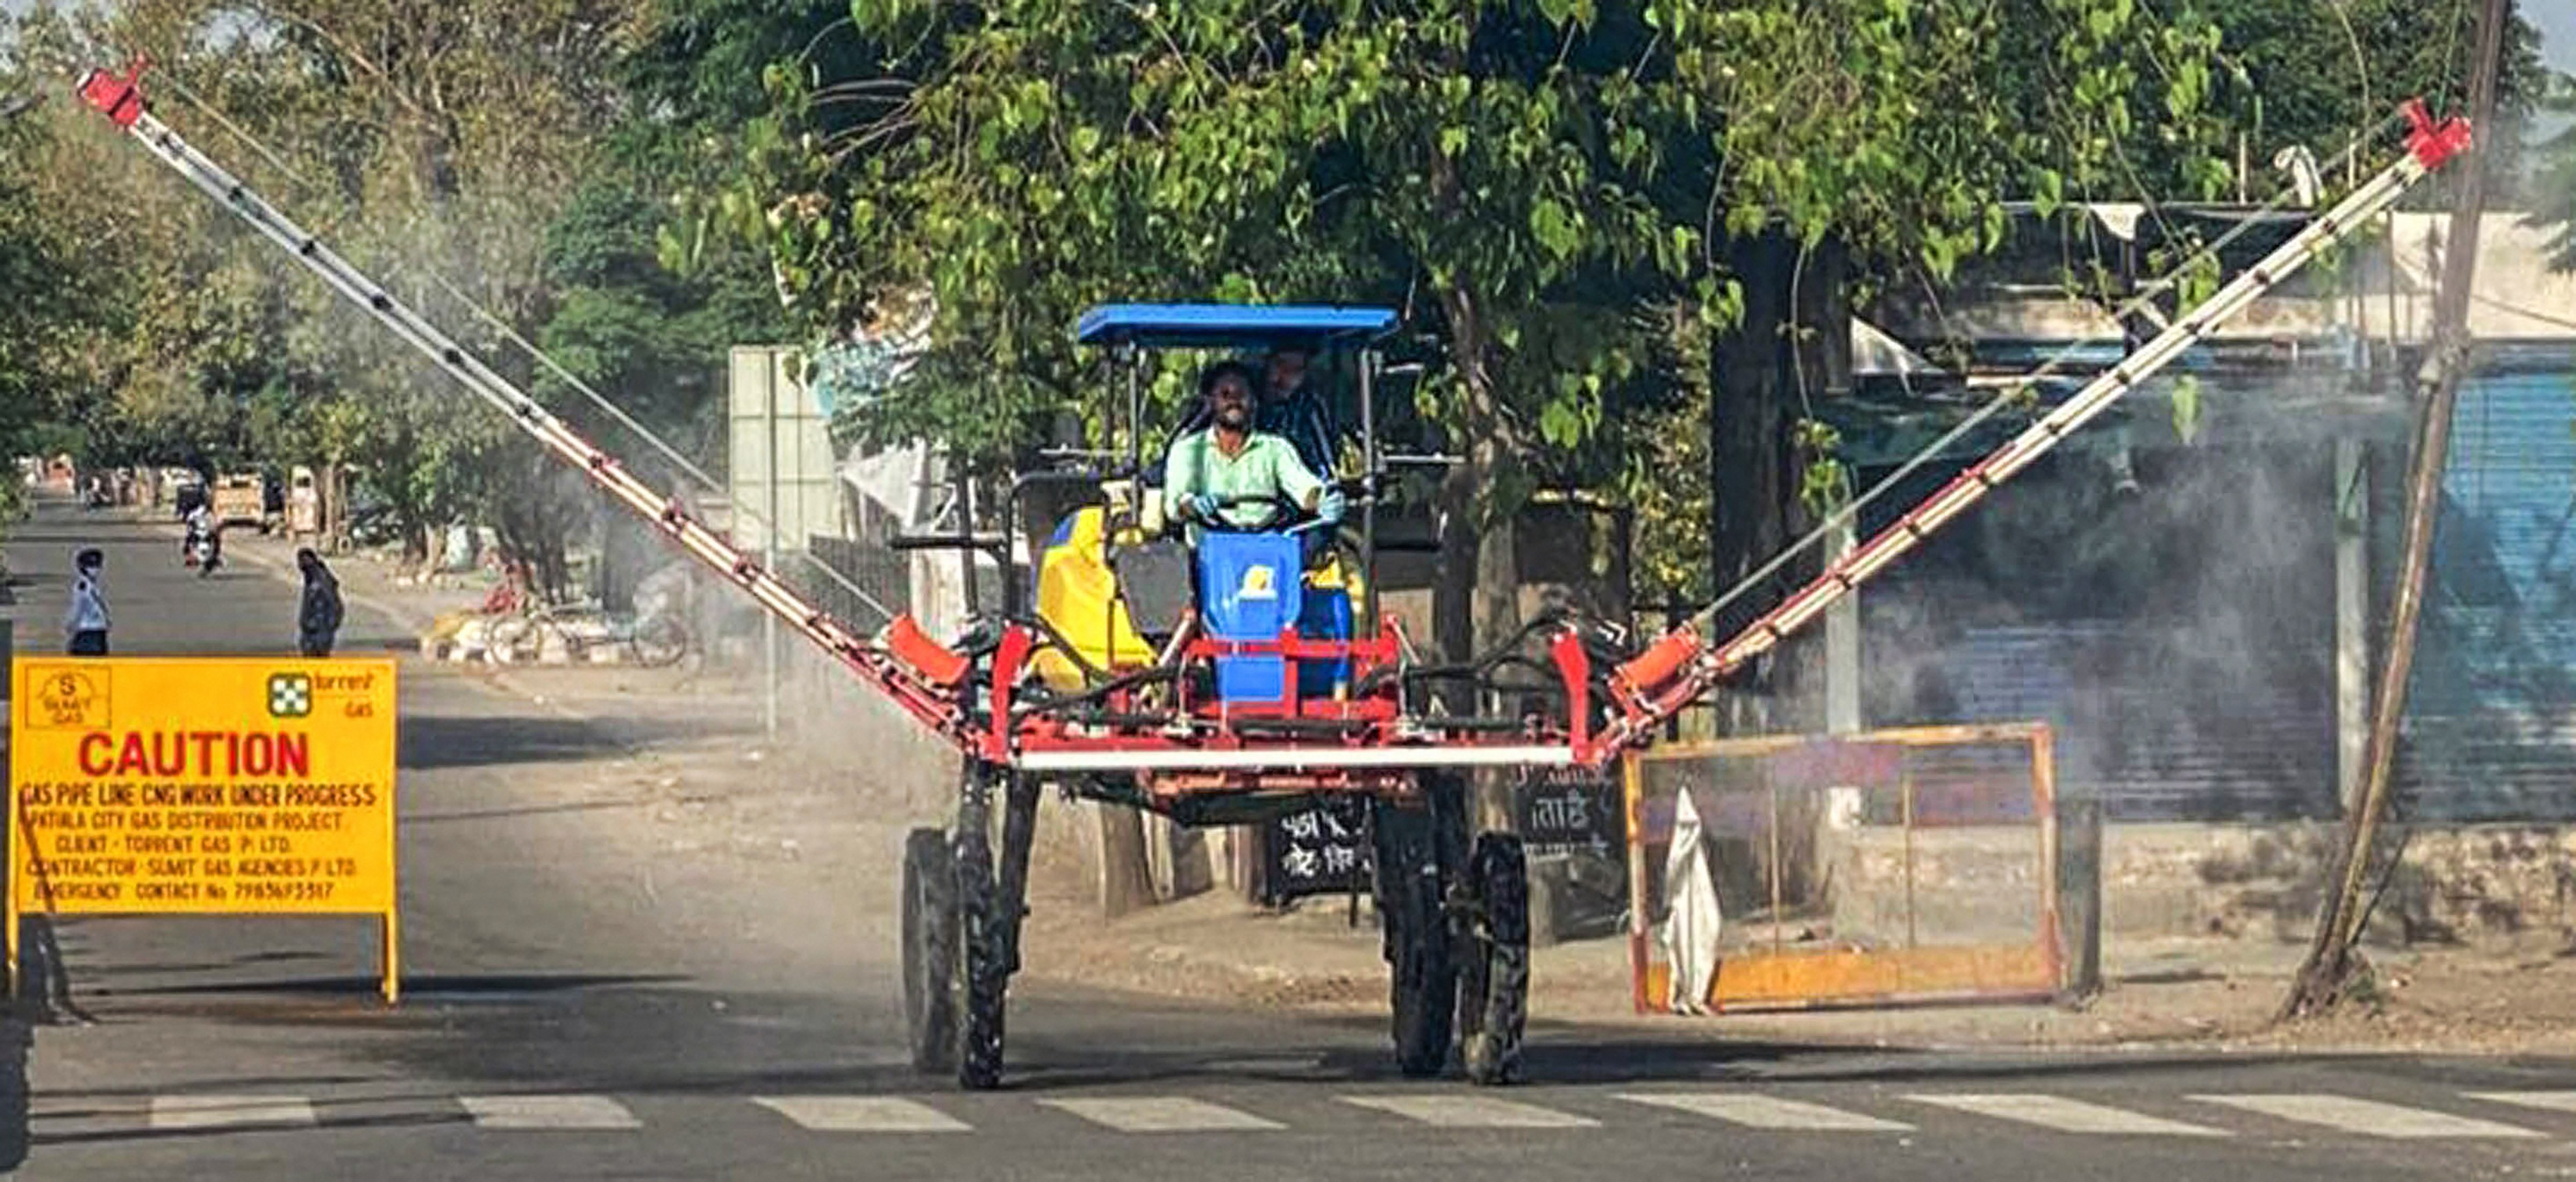 A municipal worker operates a Japanese machine to spray disinfectants on a road, during the nationwide lockdown imposed in wake of the coronavirus pandemic, in Patiala, Friday, April 10, 2020.